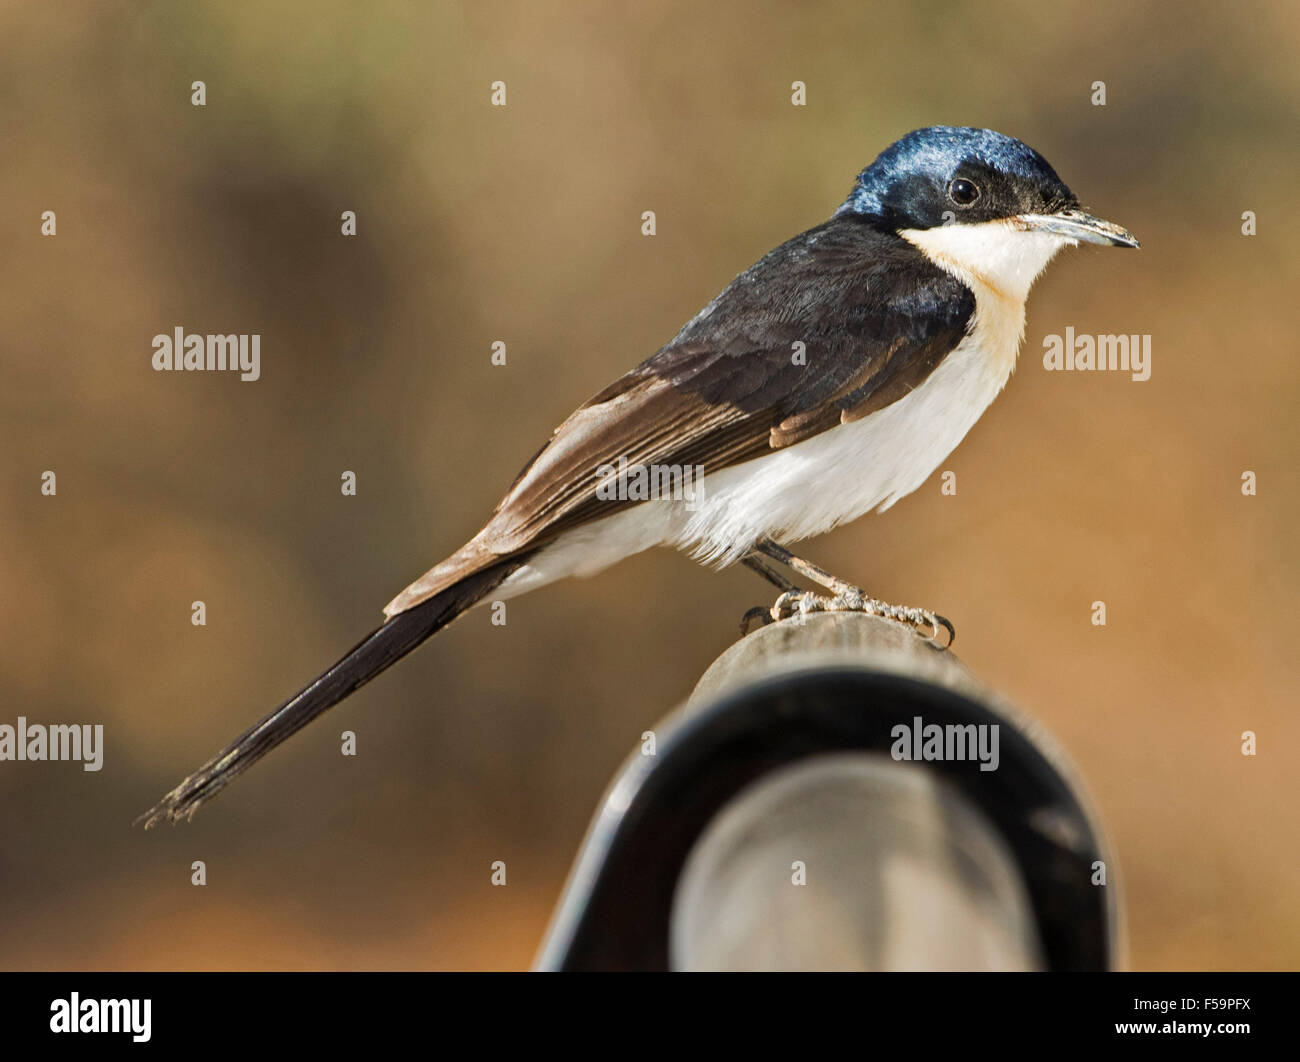 Restless flycatcher, Myiagra inquieta, black & white bird with shiny plumage against light brown background - Stock Image